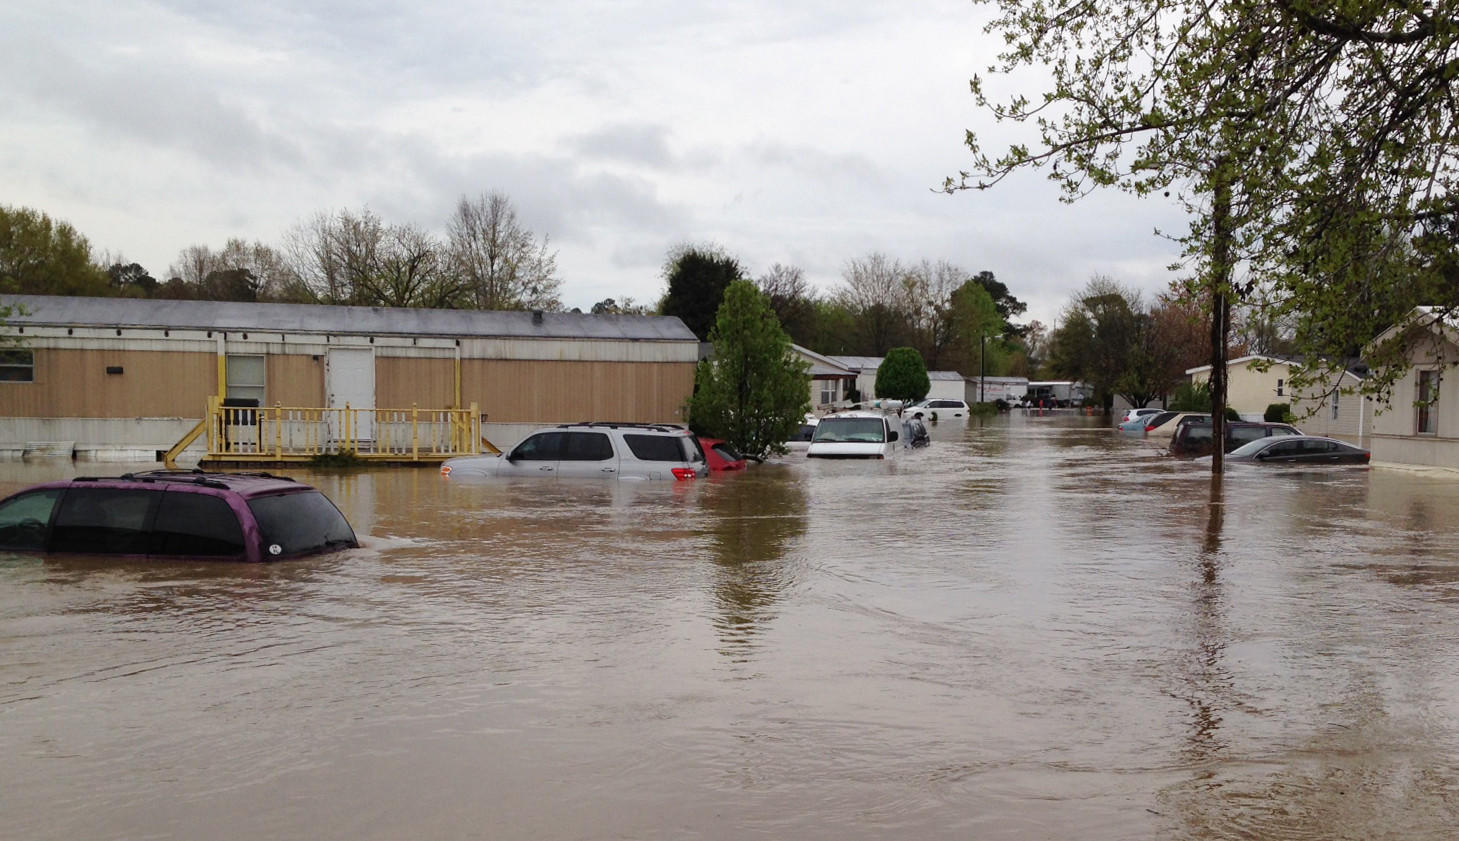 Flood waters cover a street in a mobile home park in Pelham, Ala., on Monday. Police and firefighters had to rescue people who were trapped by muddy, fast-moving water after storms dumped torrential rains in central Alabama.